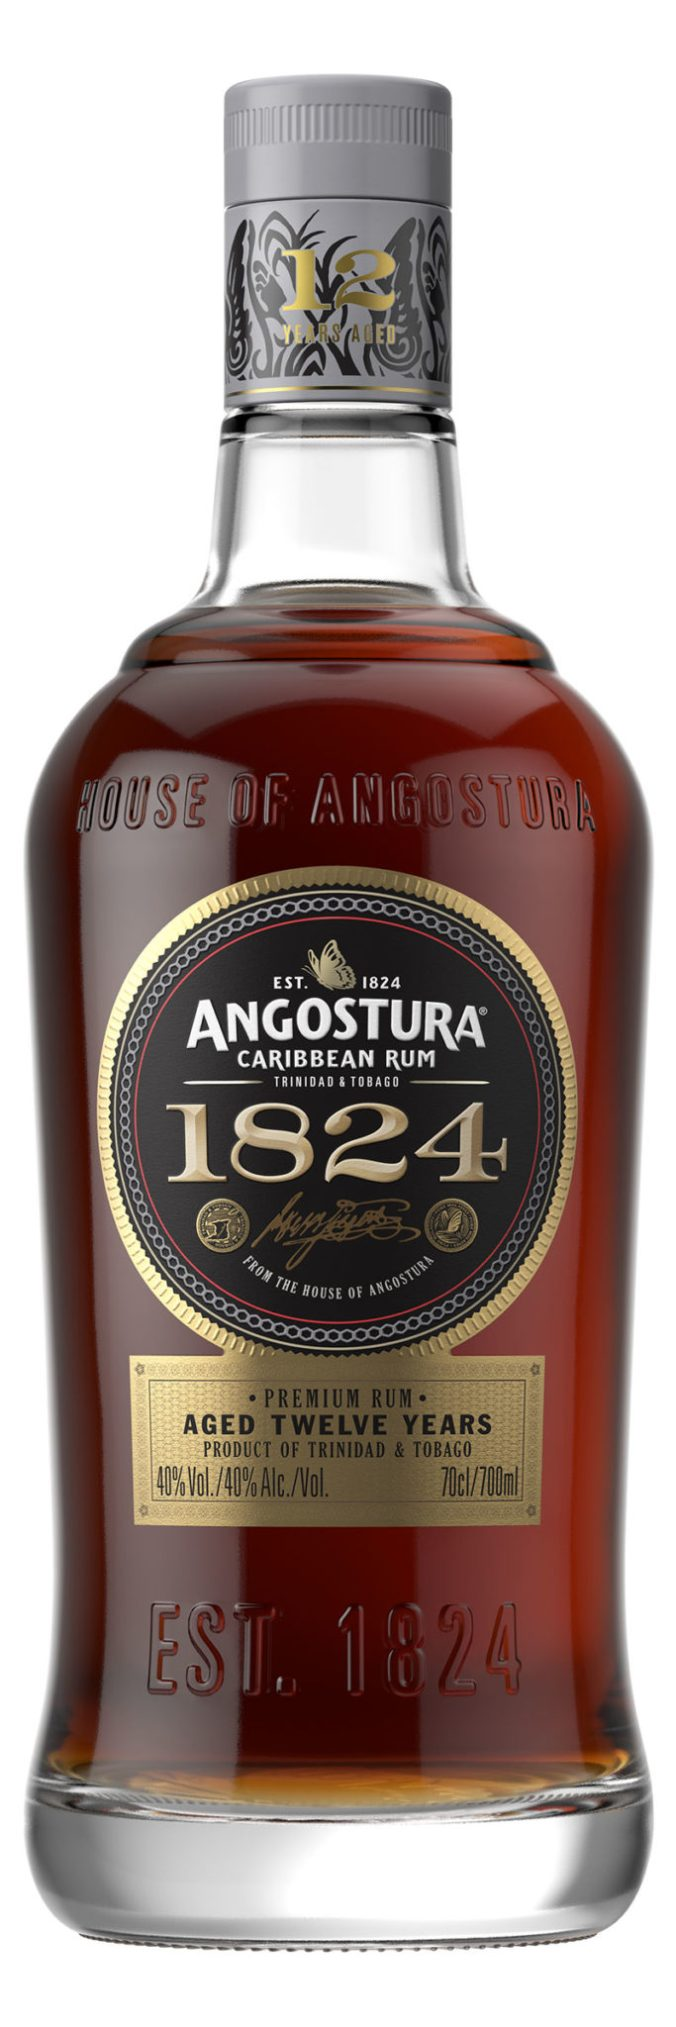 Angostura 1824 Limited Reserve Image